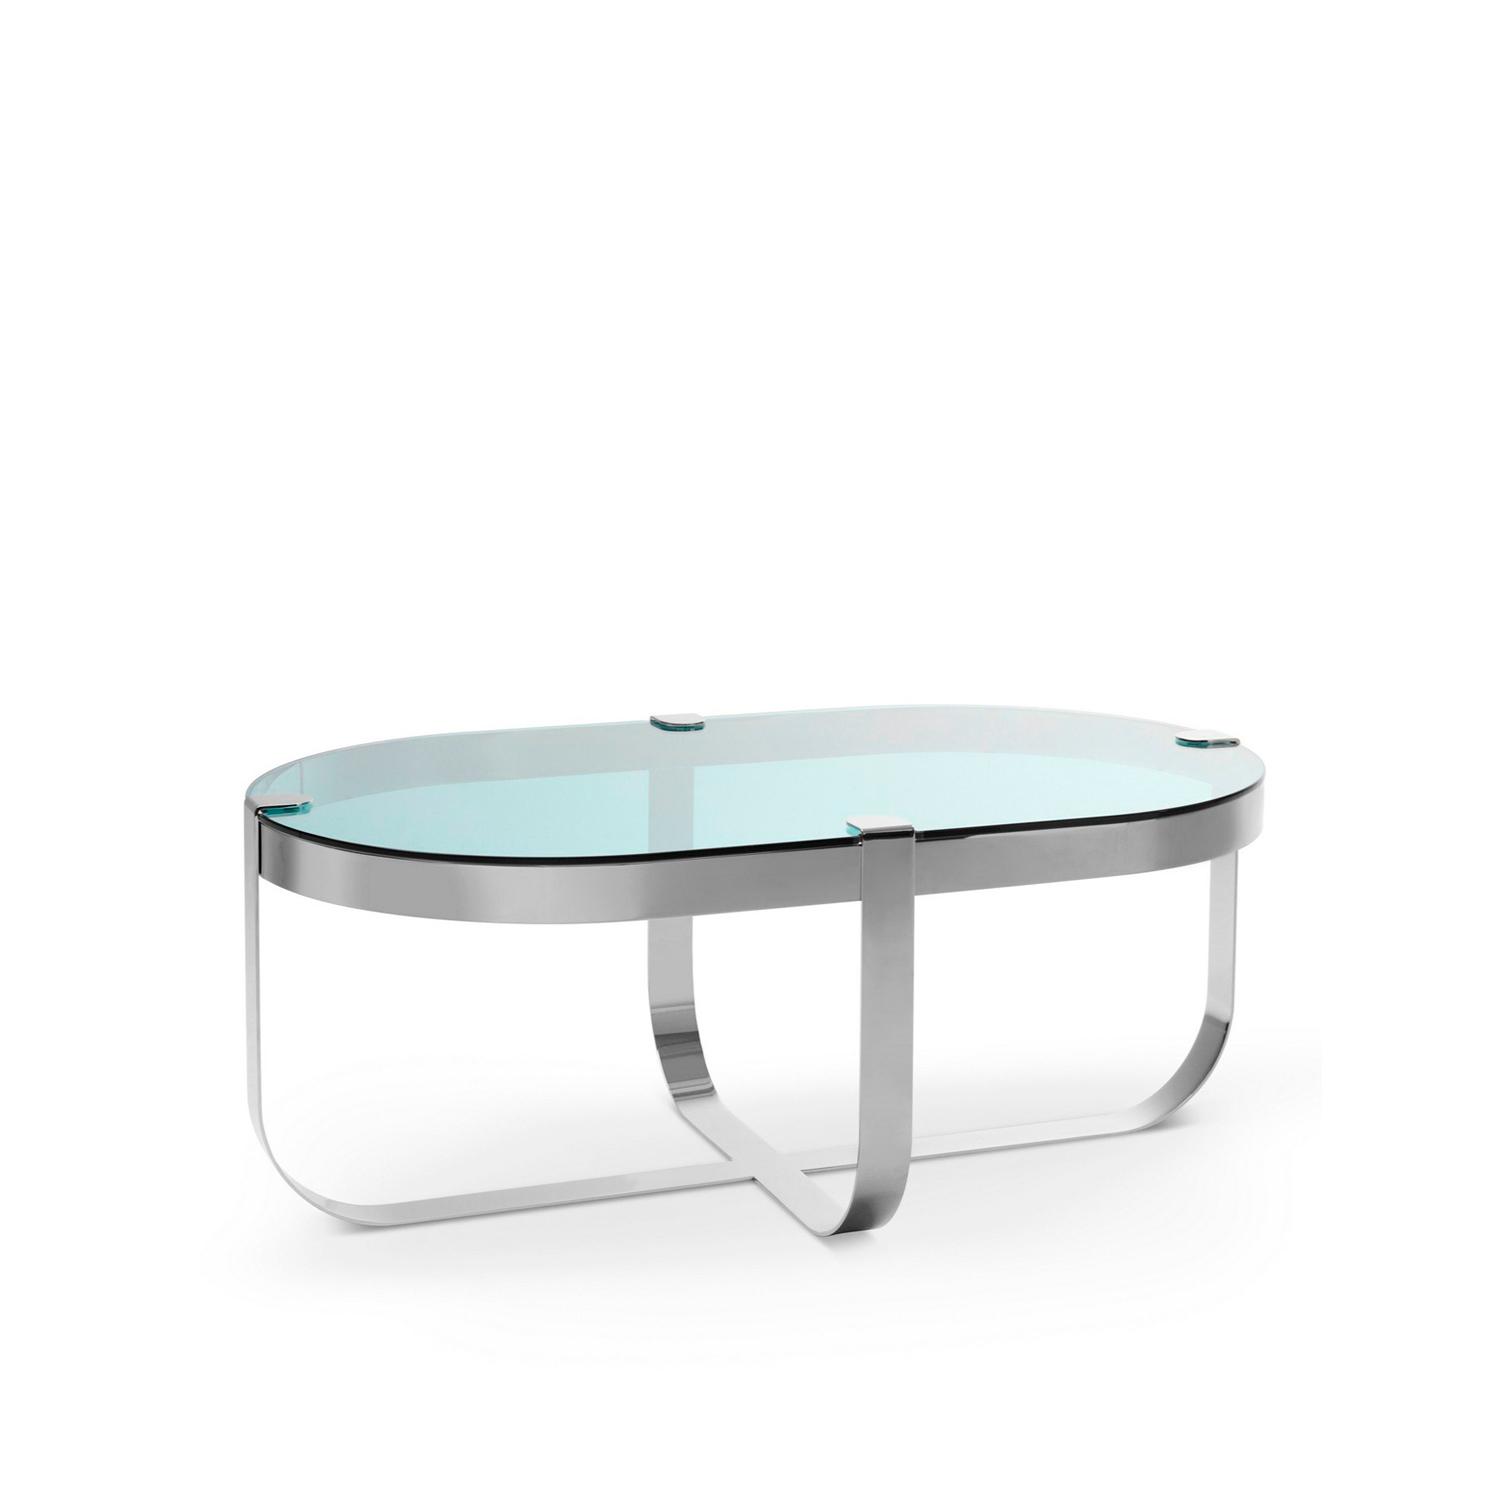 Ring Oval Coffee Table - Elegant like jewellery, the Ring coffee tables are inspired by raw cuts of precious stones prior to being mounted into rings. The choice of materials is aimed to emphasise this inspiration behind the collection. The metal base structures are available in copper, brass, steel and nickel, each of which corresponds to a geometric form. Like in jewellery design, the glass tops in transparent or light colours are literally set onto the base structures.  Finishing: Round coffee table polished copper structure - smoked glass top; Square coffee table satin finished brass structure - extra clear glass top; Octagonal coffee table black nickel structure - bronze glass top; Oval coffee table clear chrome structure - sea water glass. | Matter of Stuff